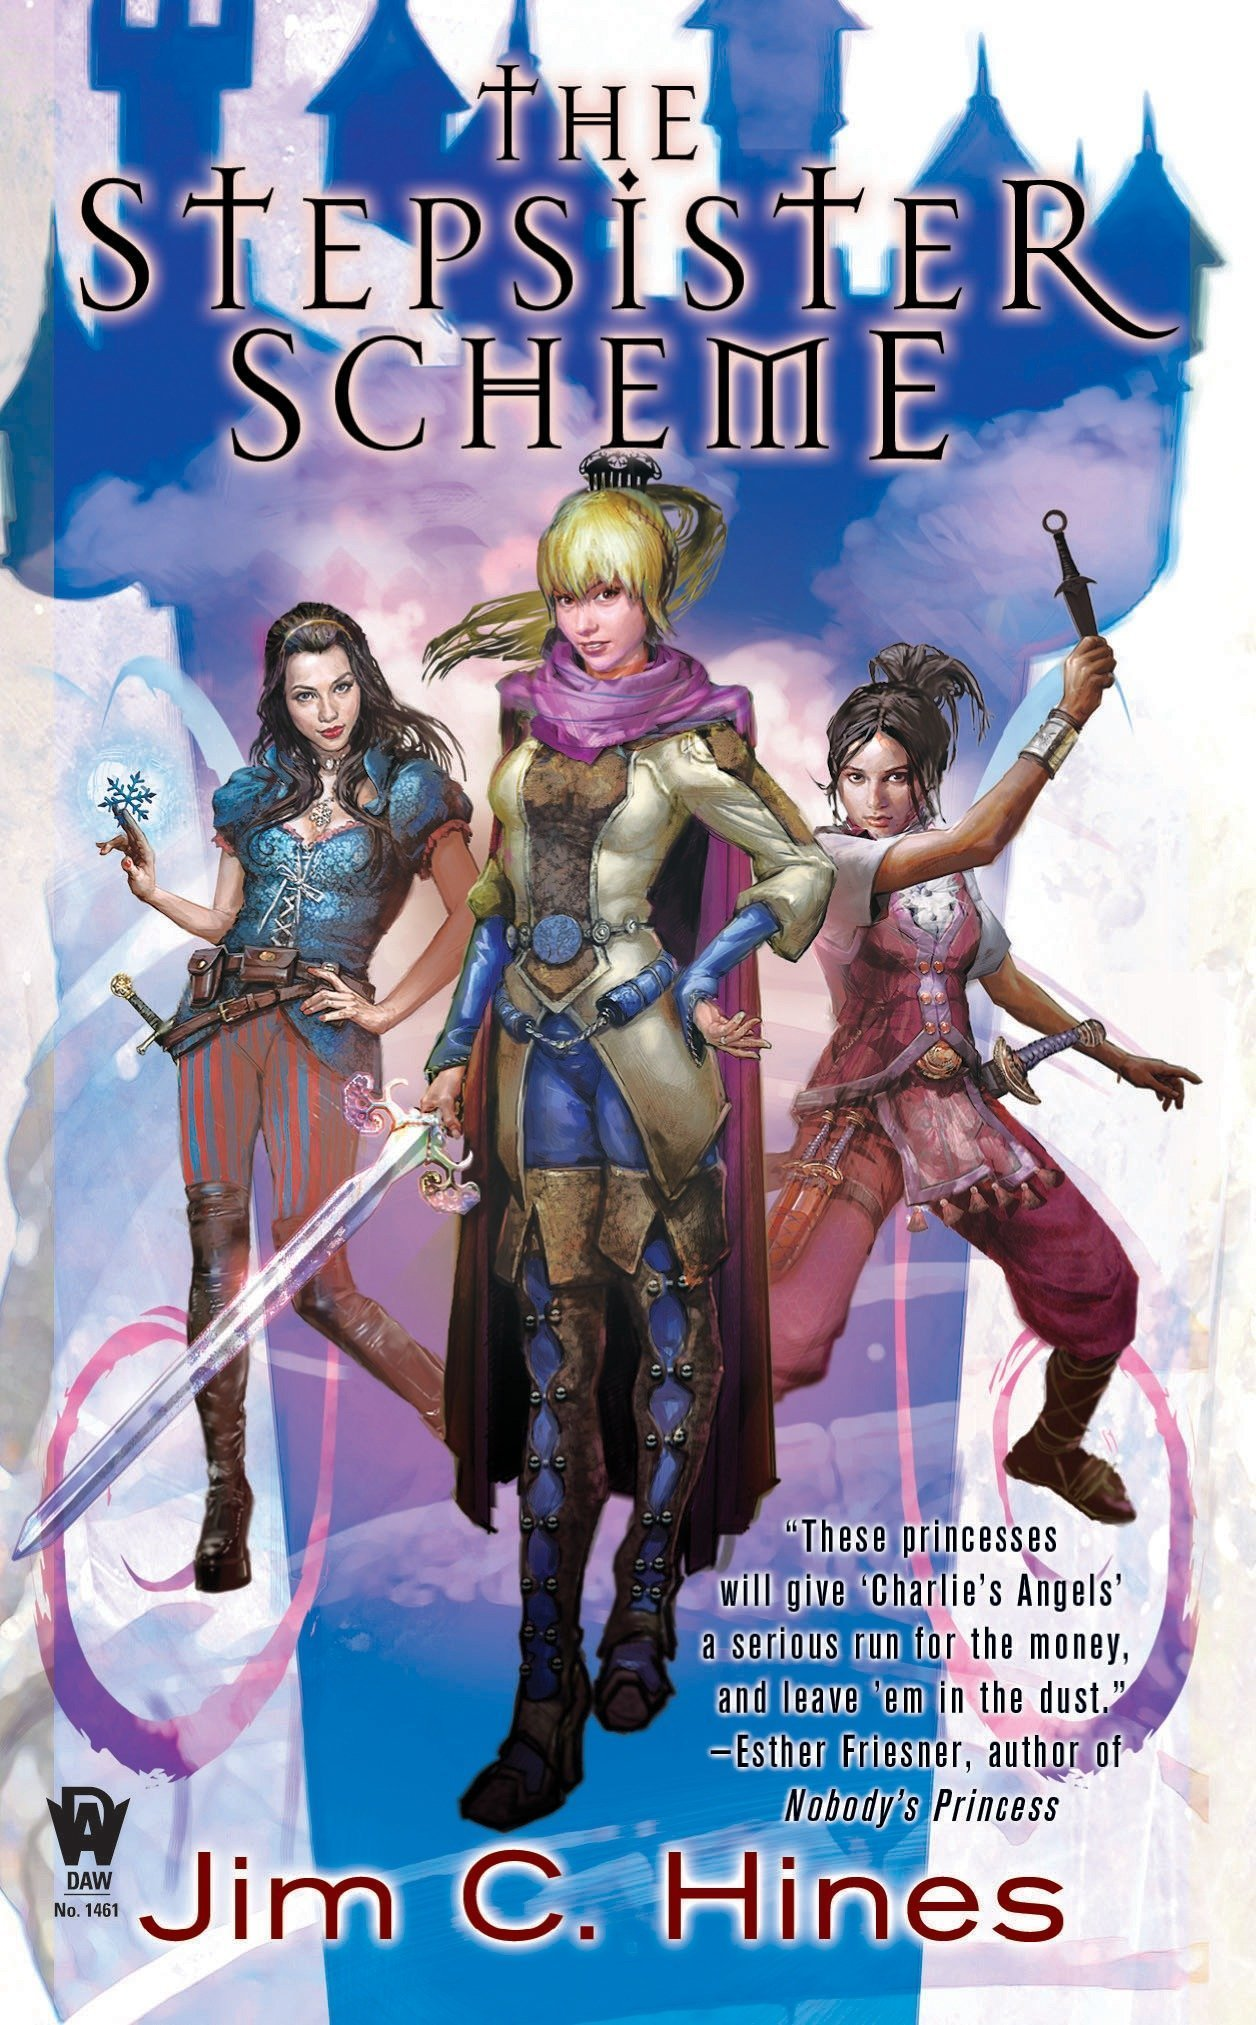 BWW Review: THE STEPSISTER SCHEME by Jim C. Hines